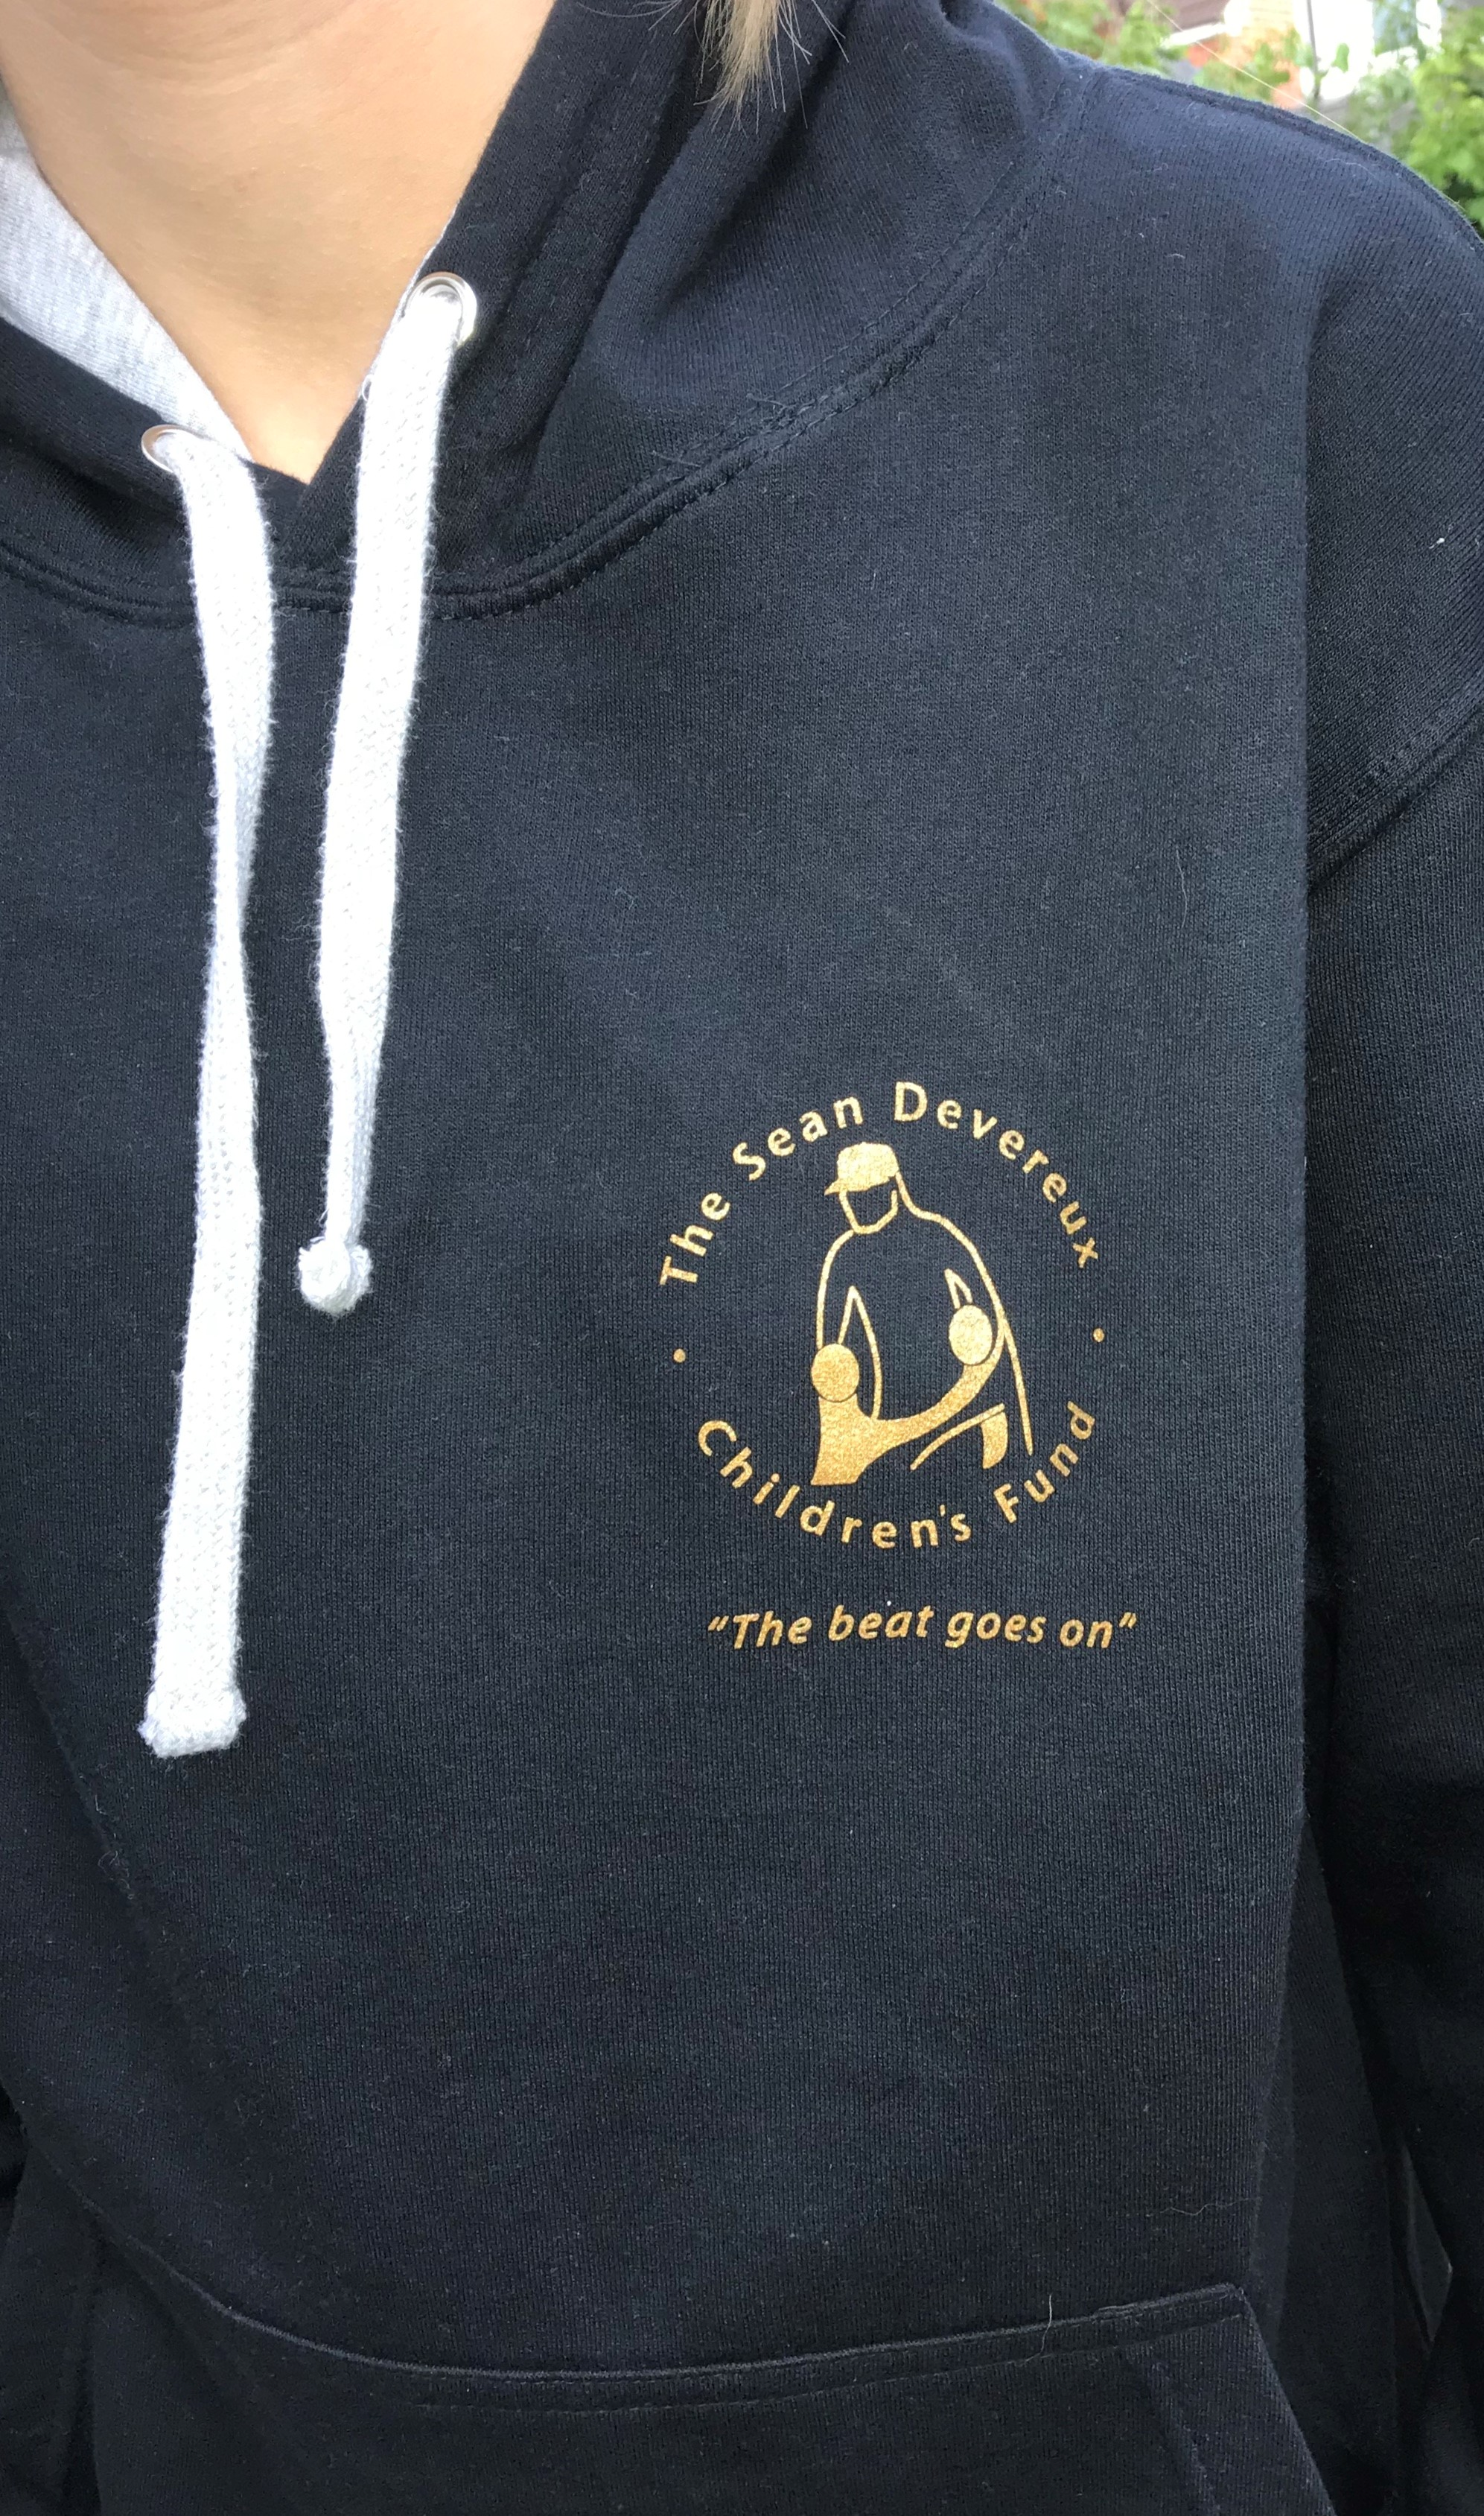 The hoodies, which are unisex, are dark navy with a heather grey contrast hood and come in sizes from XS-XL. The logo is in gold on the front and features the inspirational words,